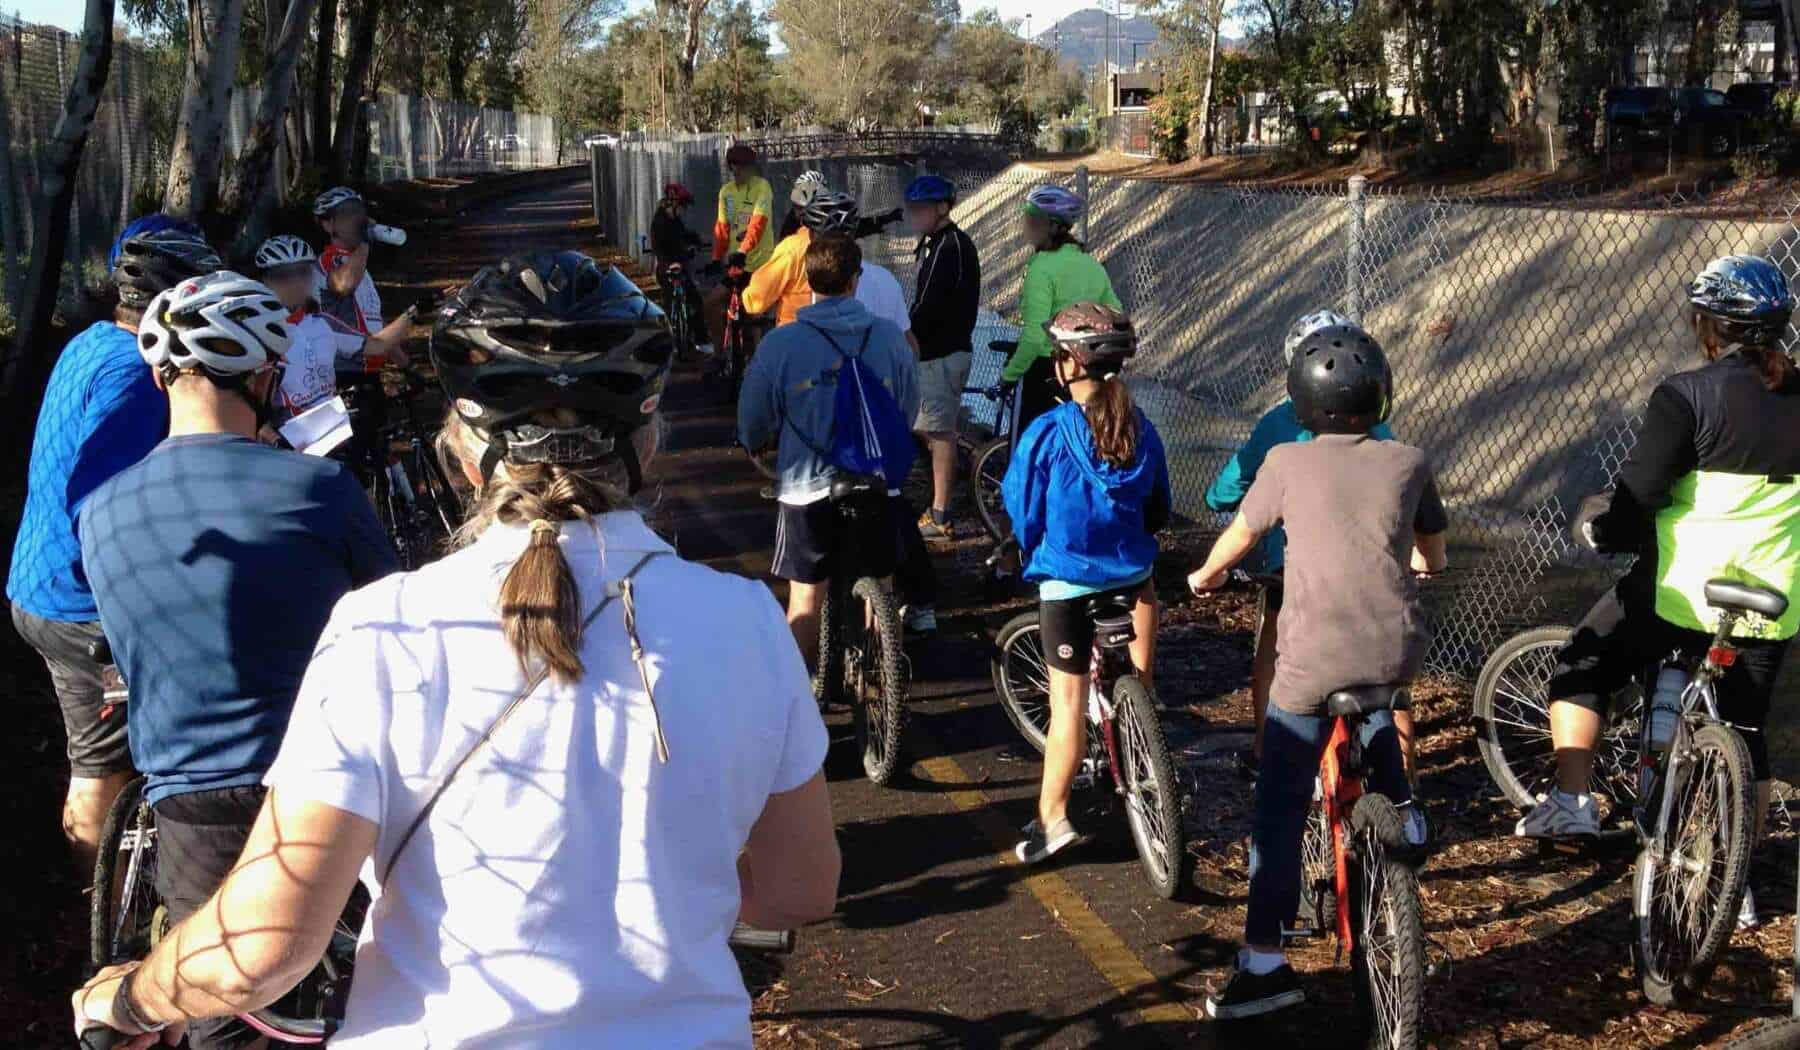 A mix of 16 adults & children stop during a bike ride to learn about a nearby creek.